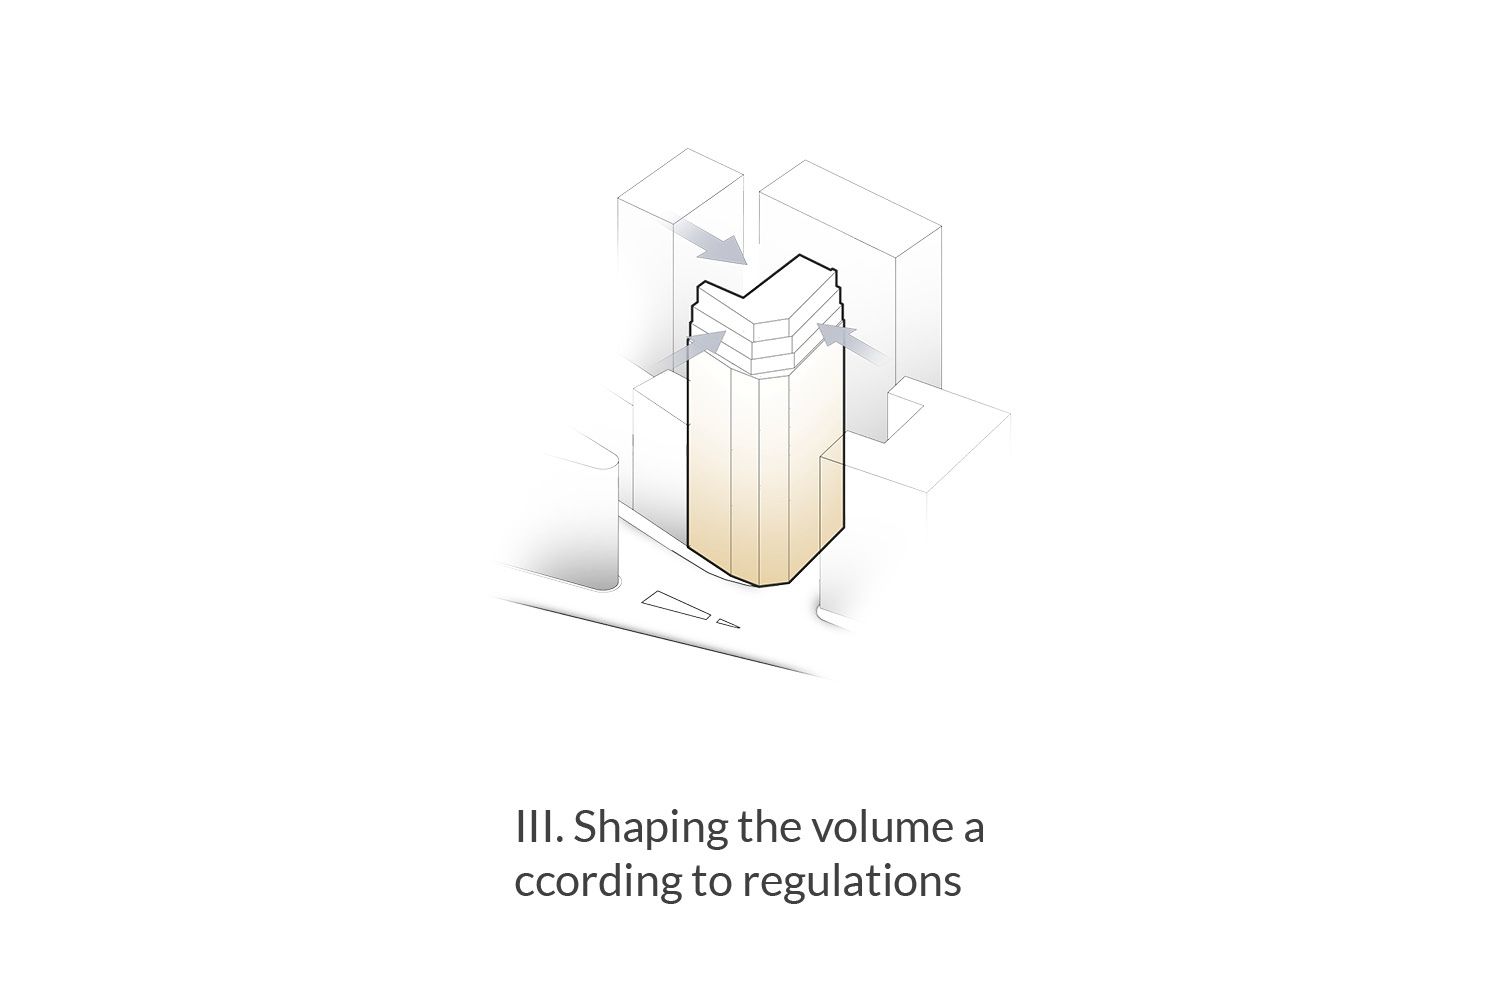 Shaping the volume according to regulations AVA